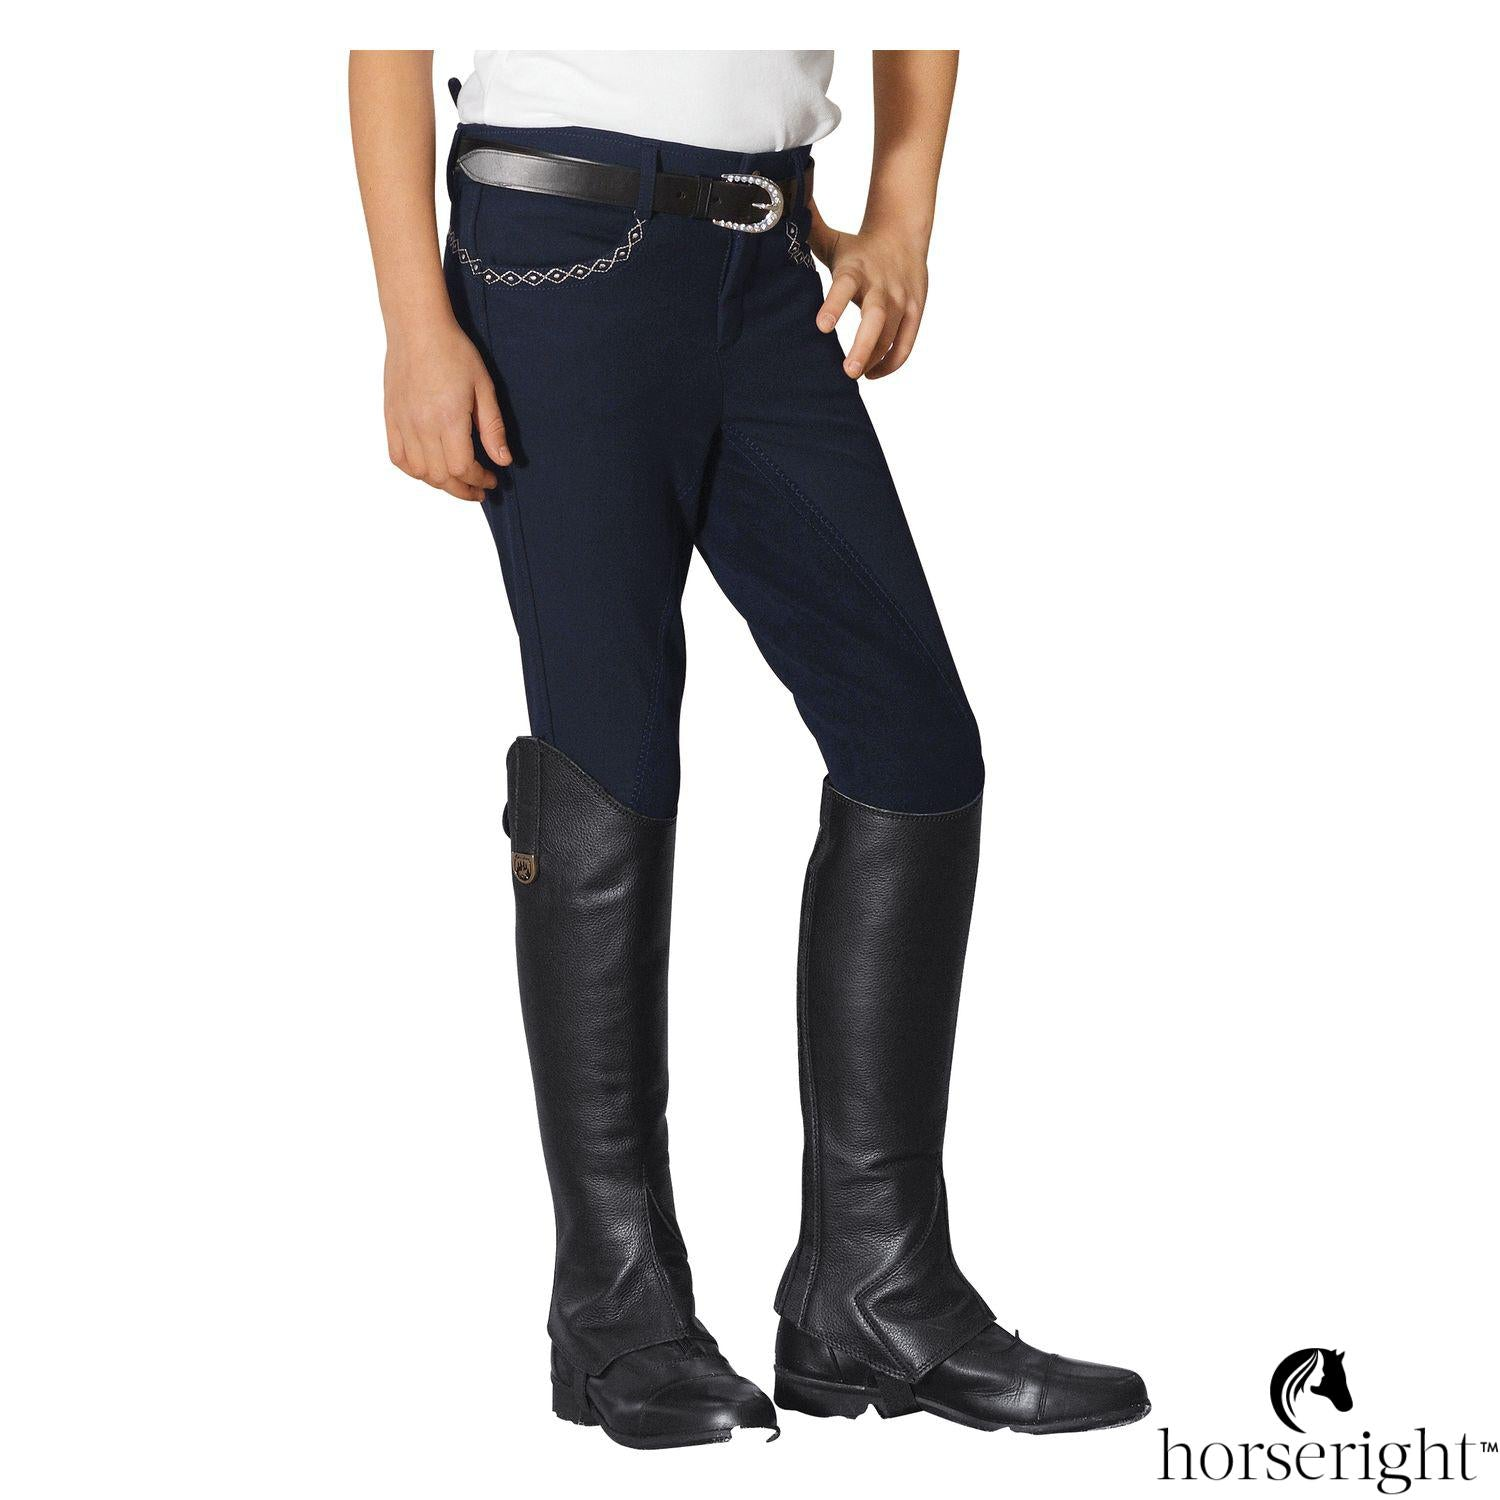 Cavallo Calla Children's Jodhpurs